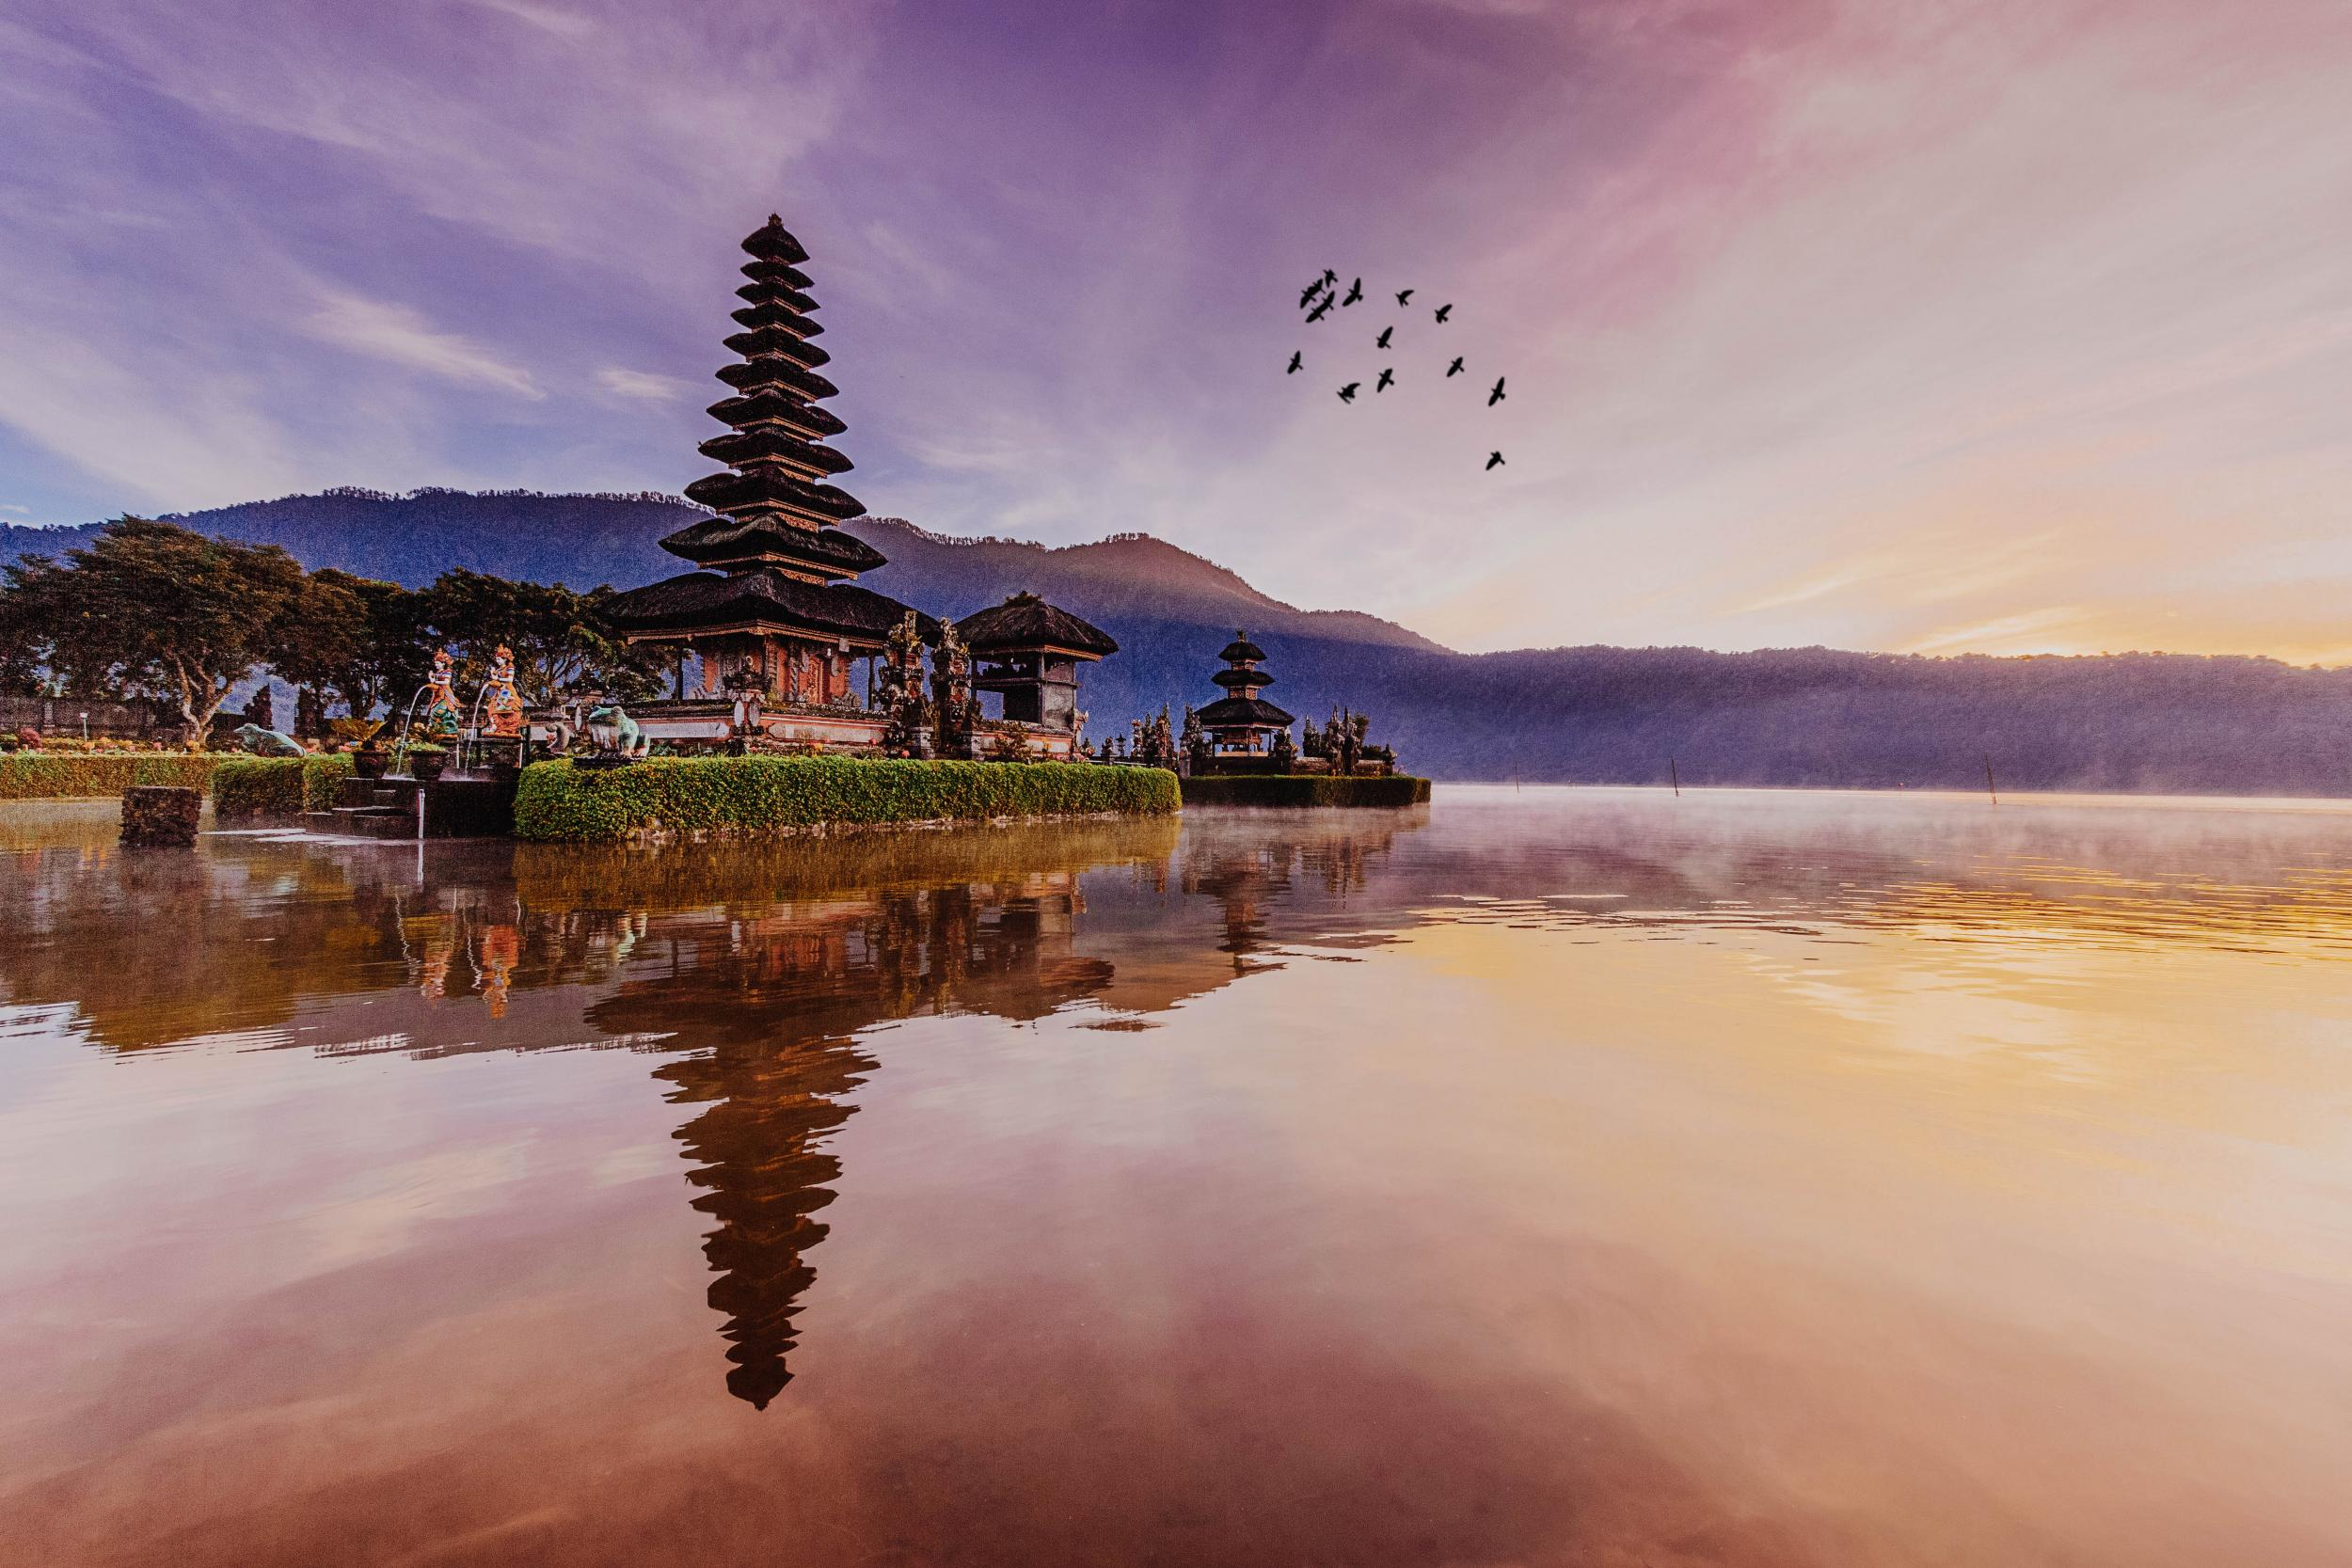 First direct flight from London to Bali to launch